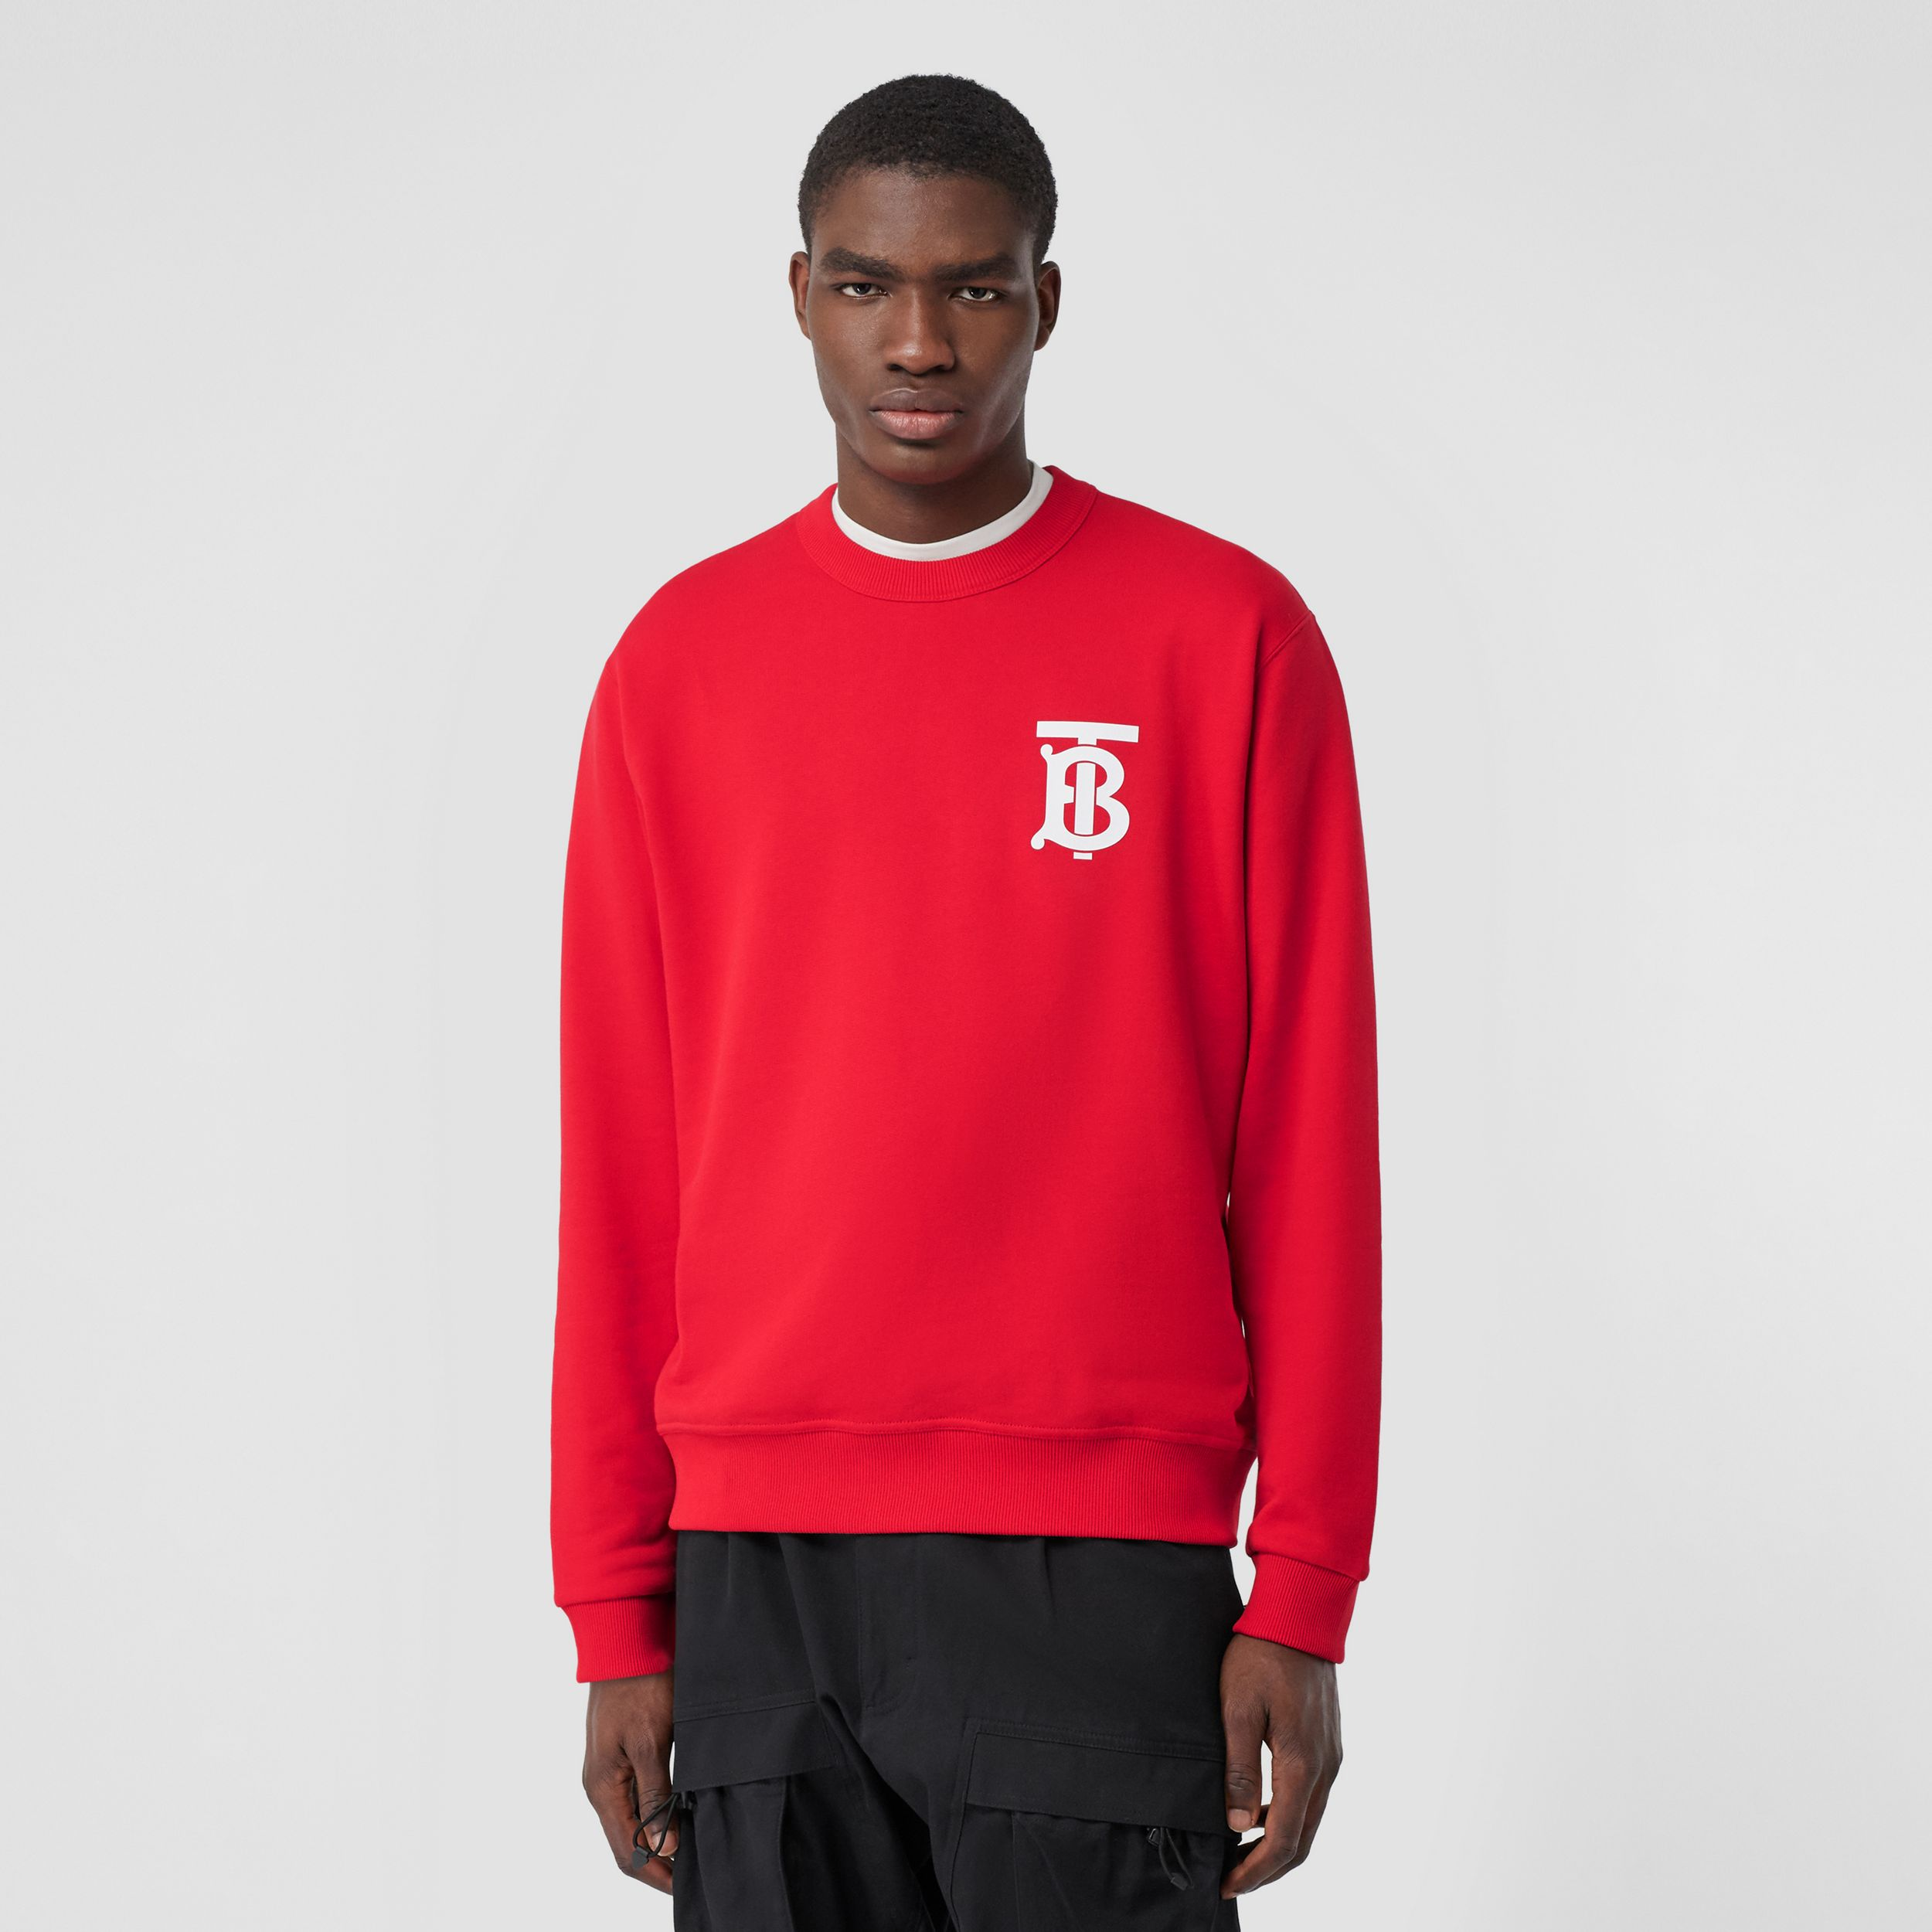 Monogram Motif Cotton Sweatshirt in Bright Red - Men | Burberry Australia - 1